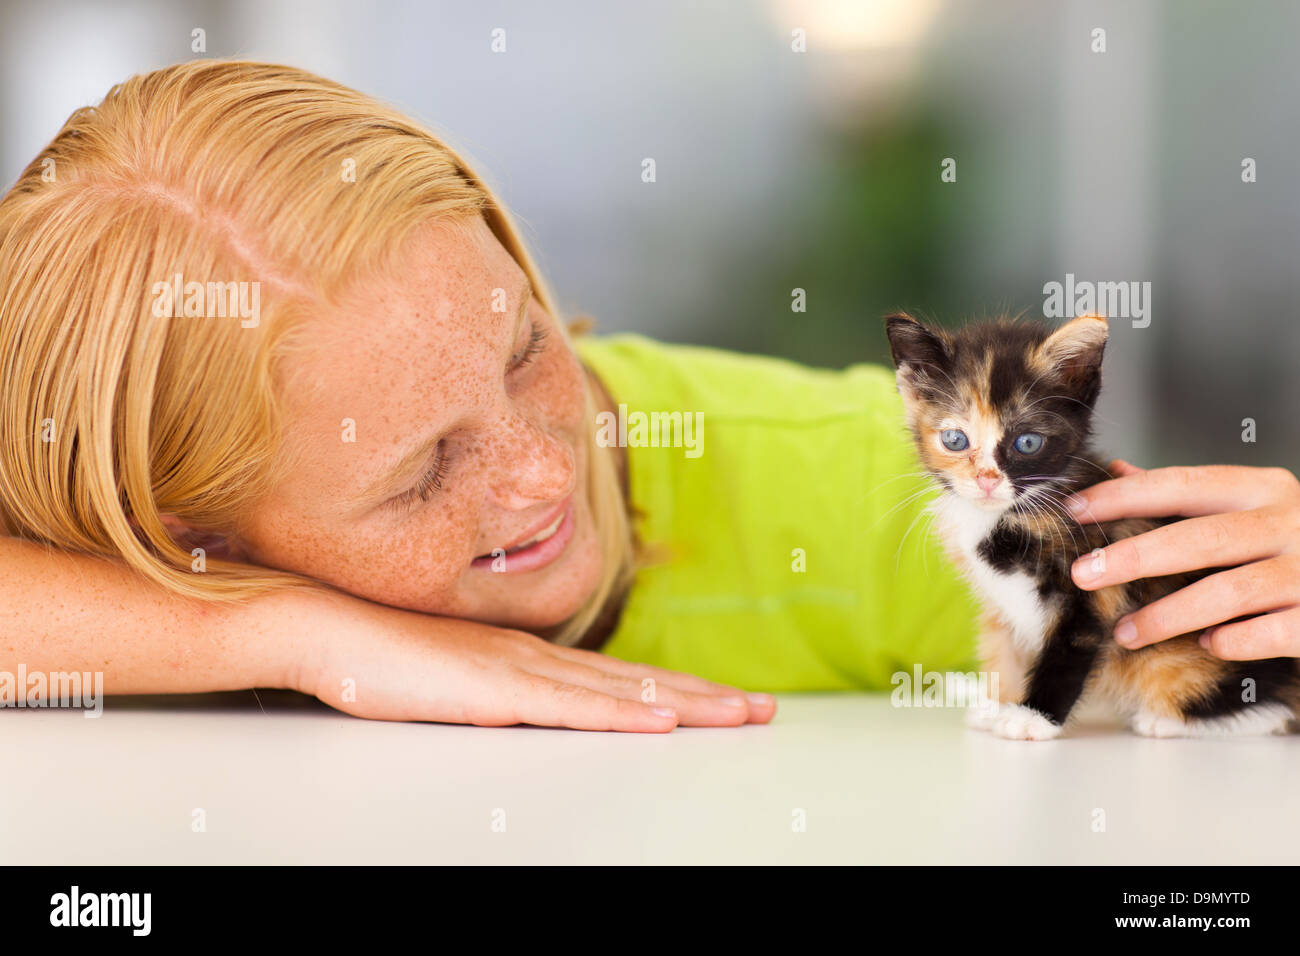 loving pre teen girl playing with her pet kitten - Stock Image